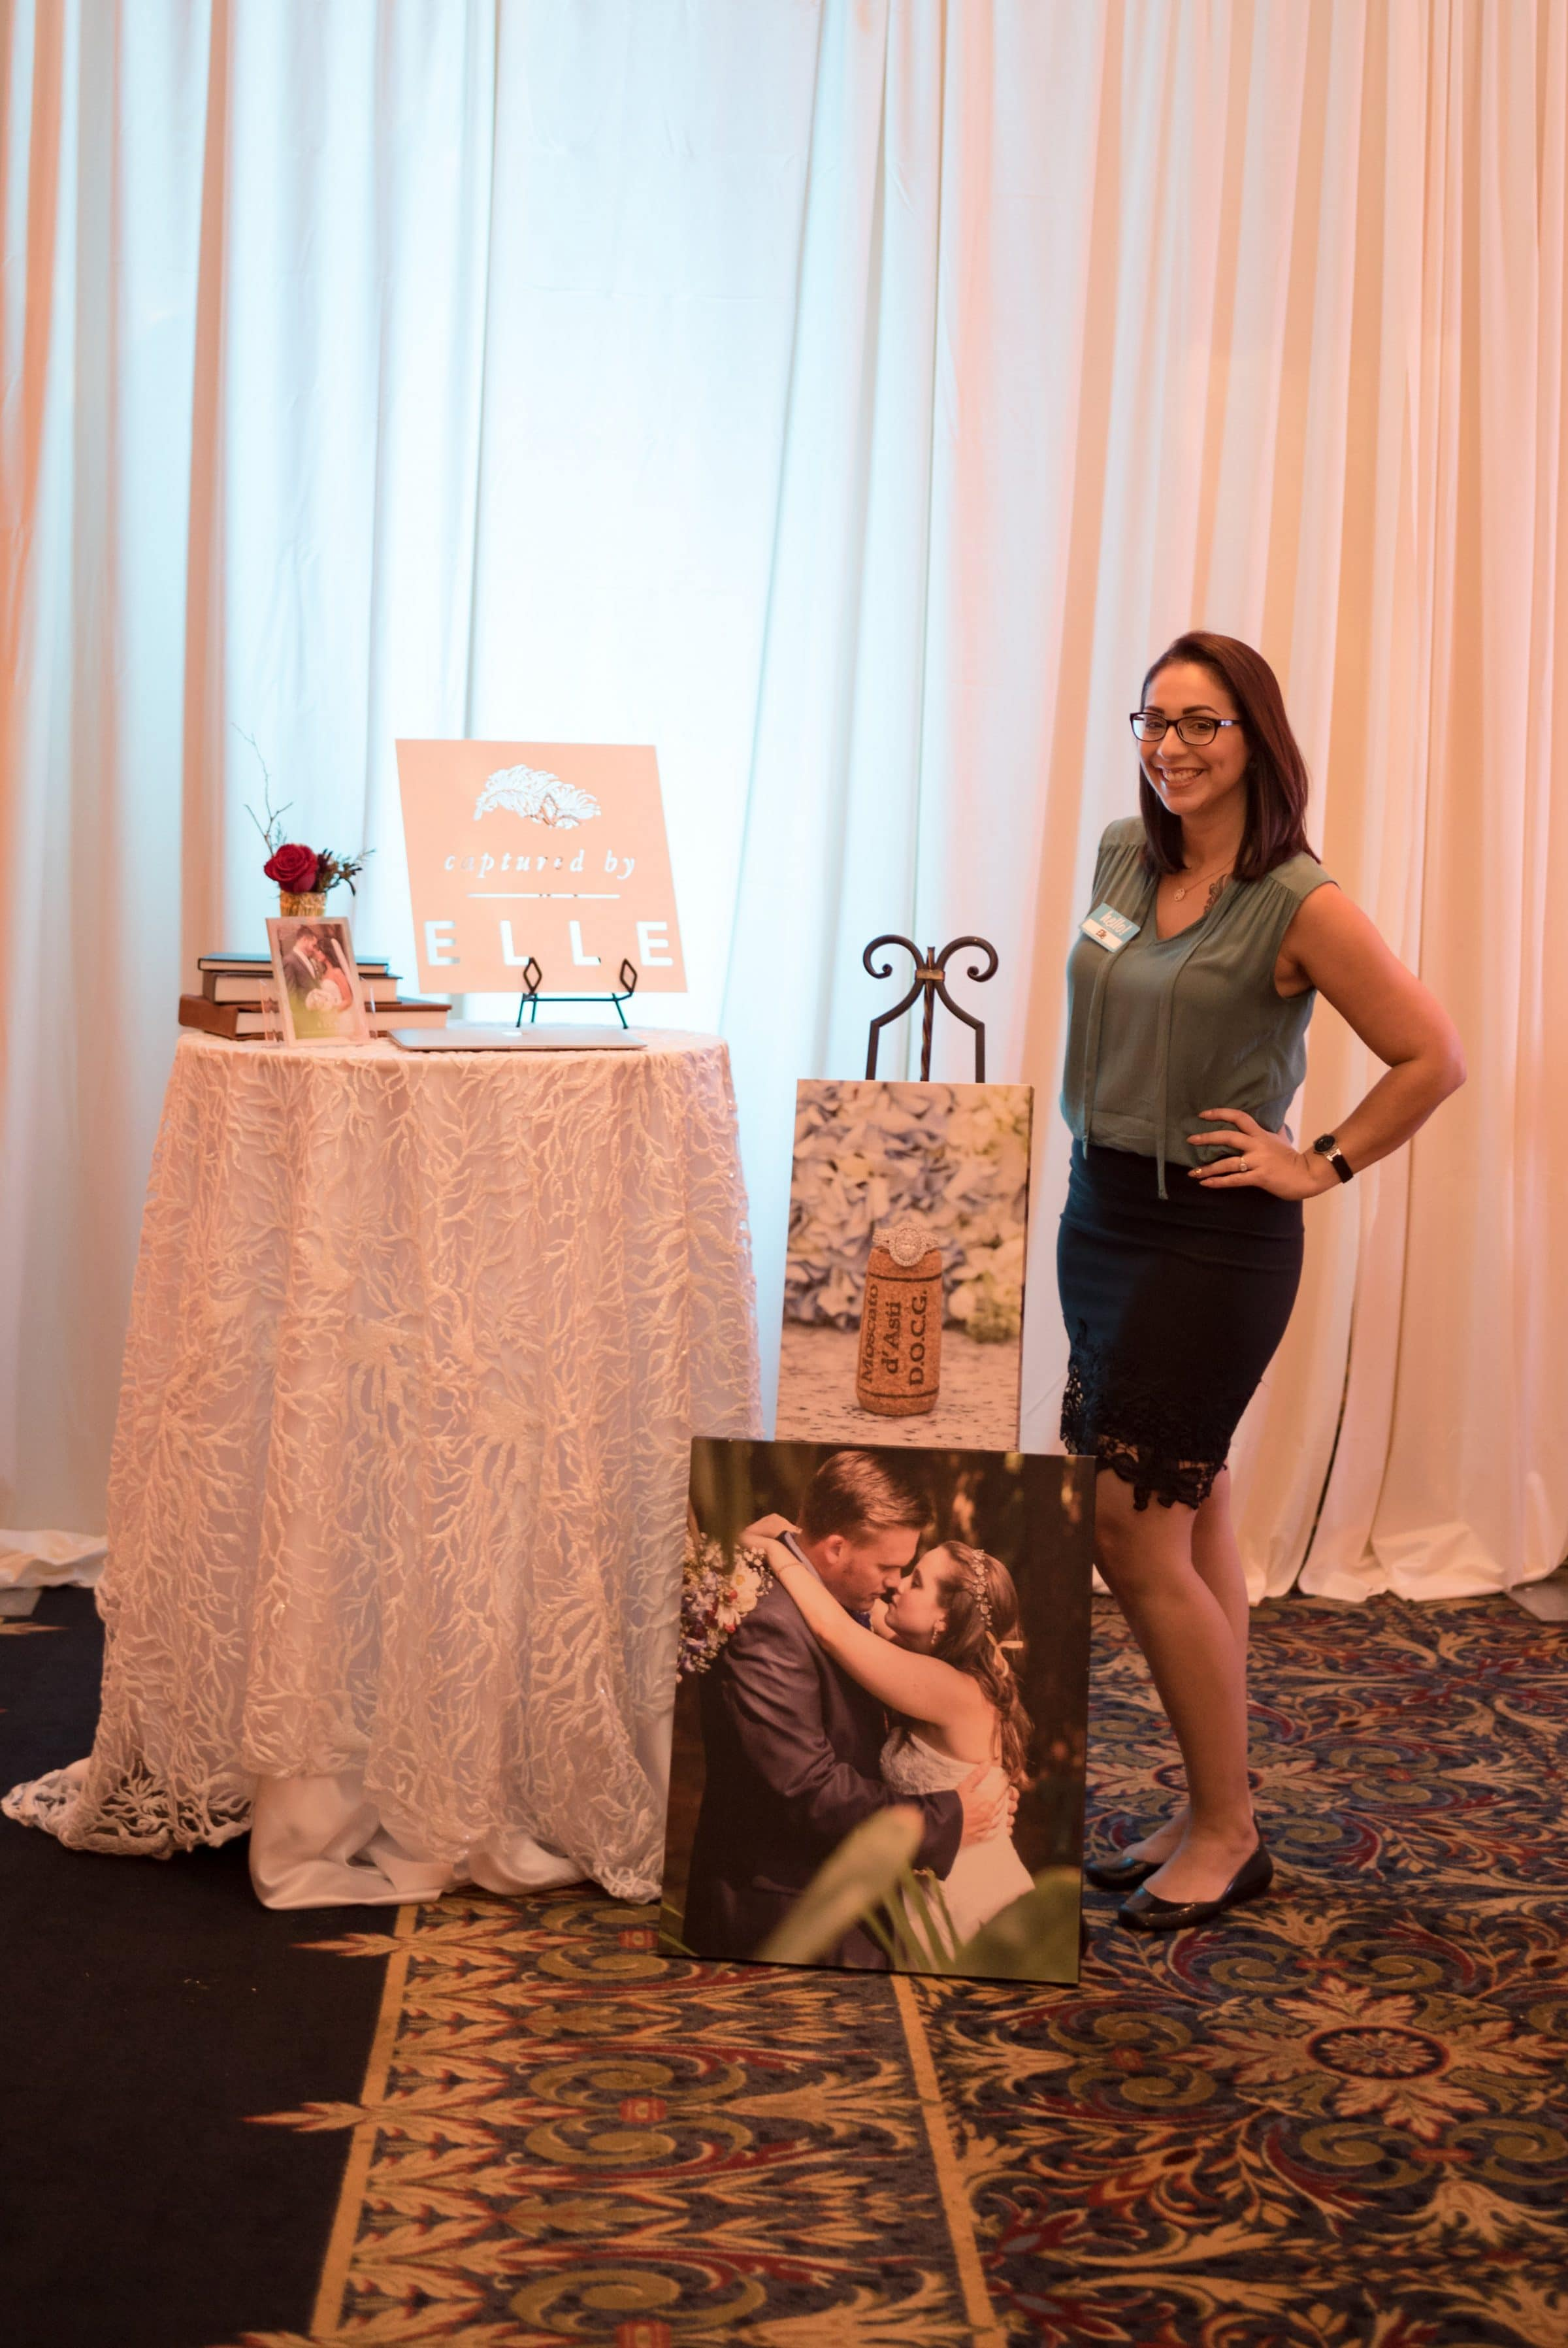 Woman standing next to table and photo easel